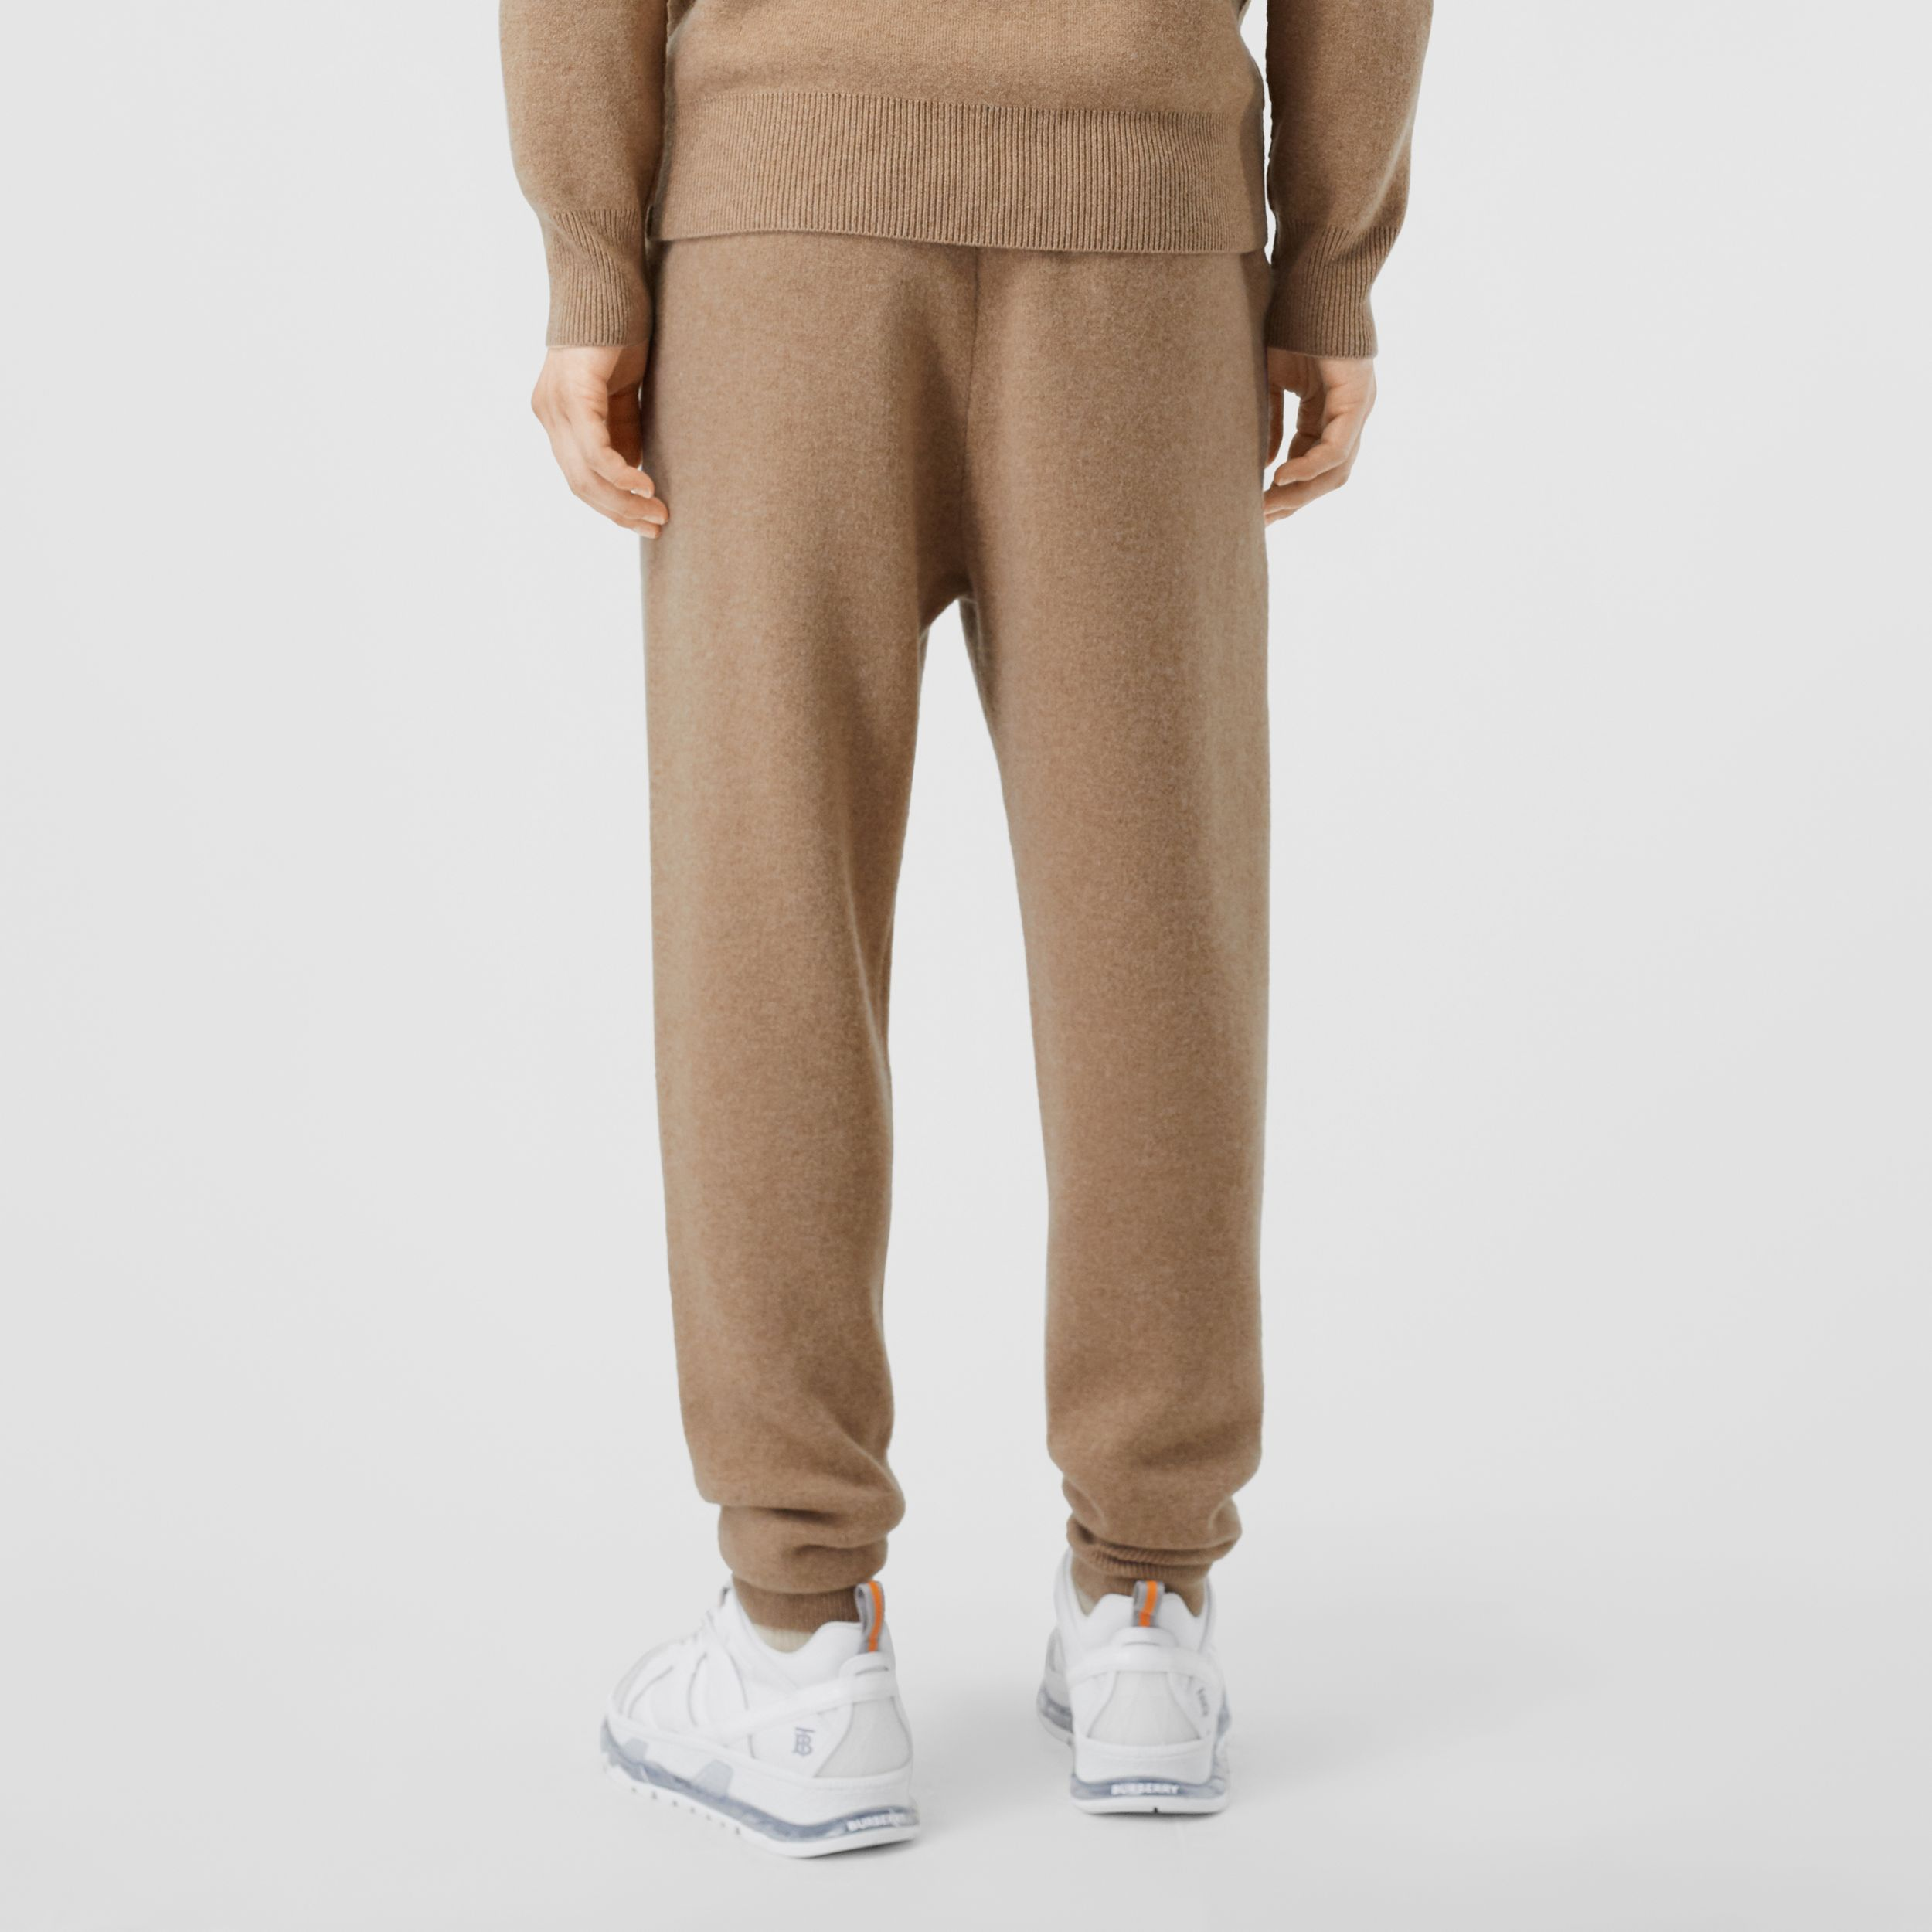 Monogram Motif Cashmere Blend Jogging Pants in Pale Coffee - Men | Burberry Hong Kong S.A.R. - 3